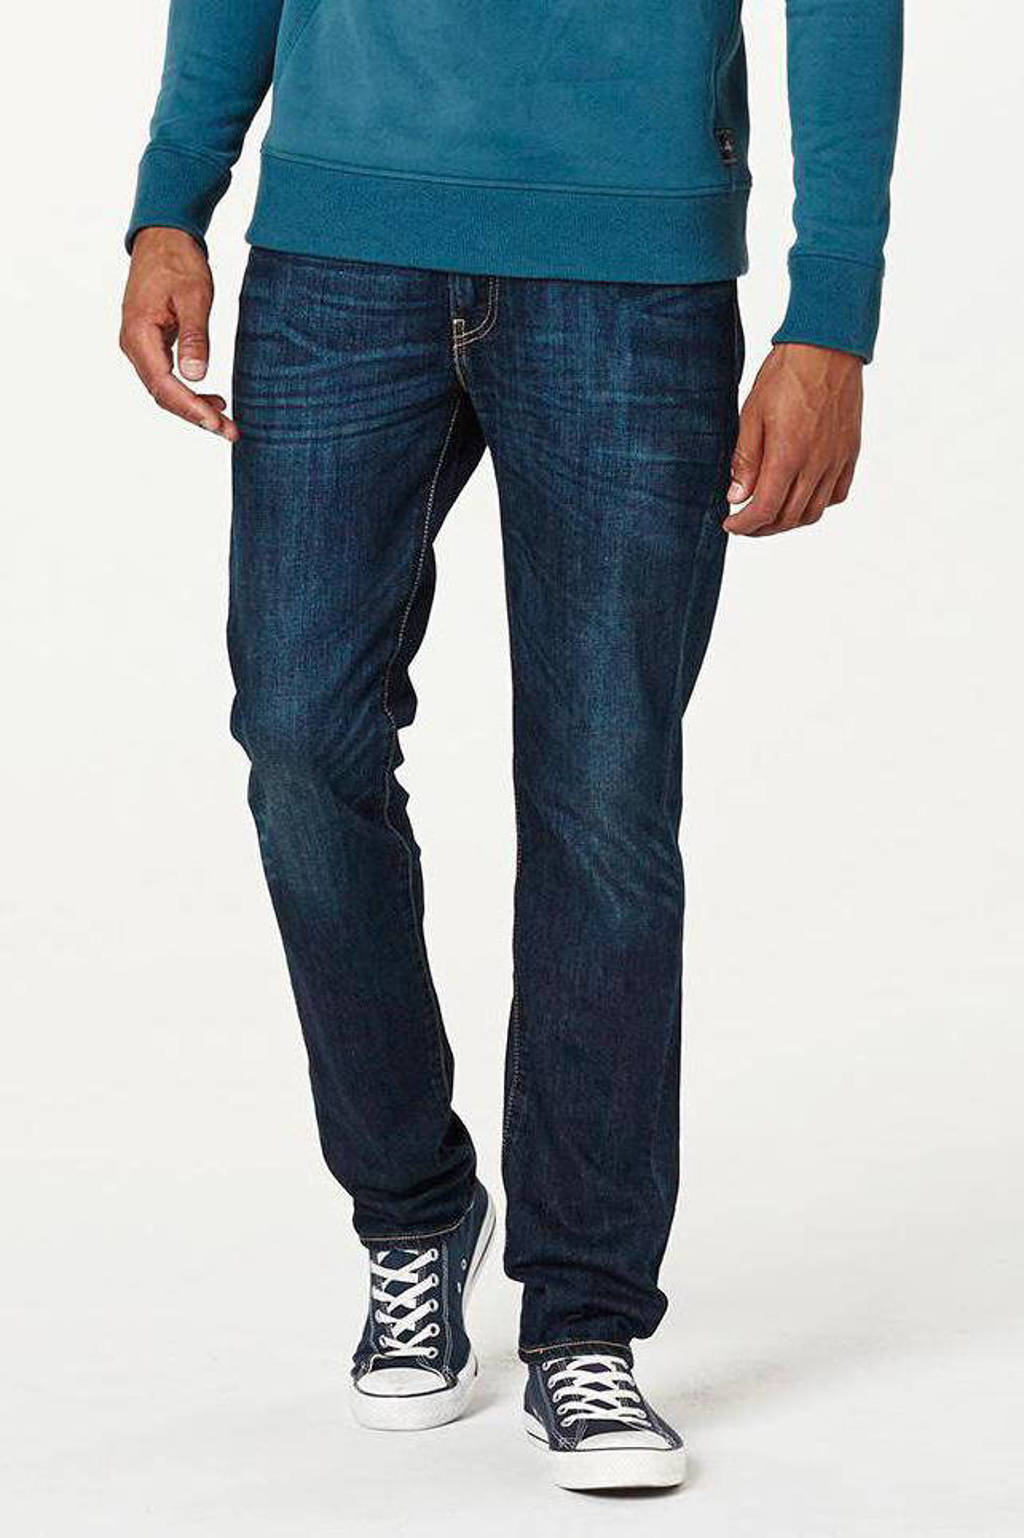 Levi's 511 slim fit jeans rain shower, Rain shower